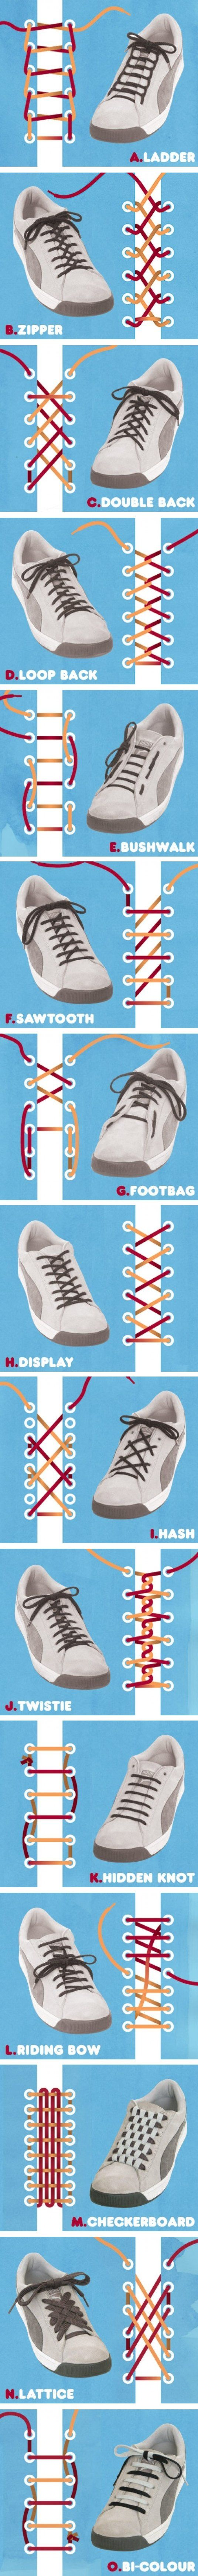 41 Shoe Lace Methods